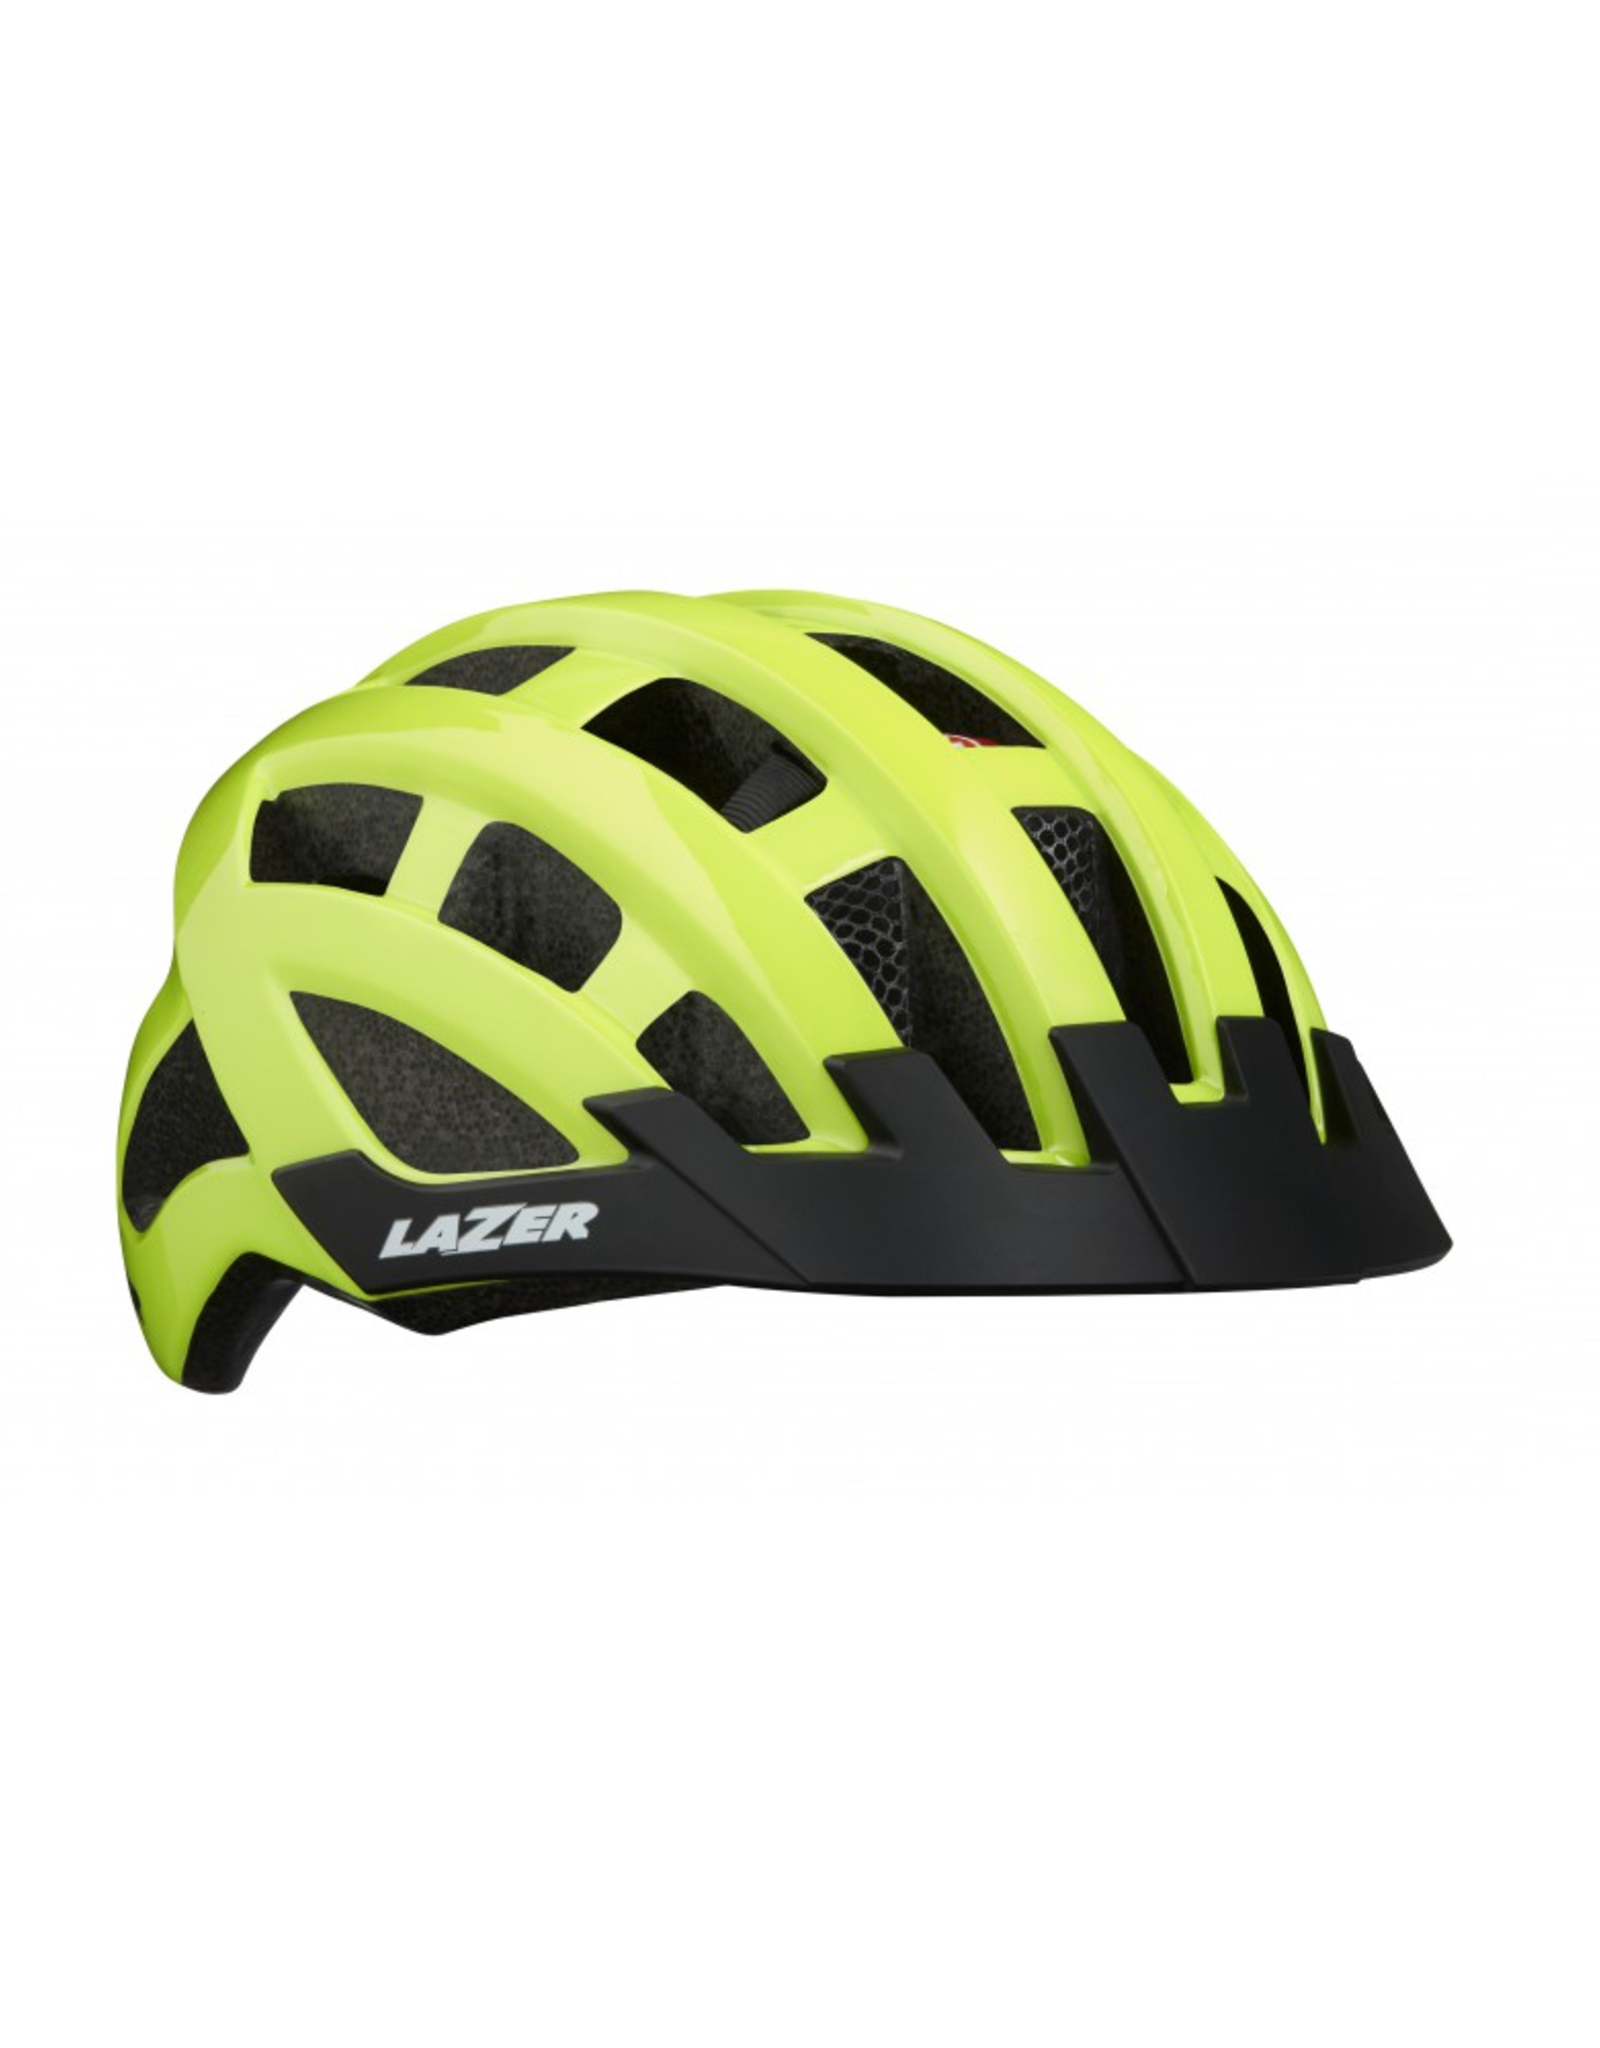 Lazer Helmet - Lazer Compact DLX Mips Flash Yellow w/ Light, One-size